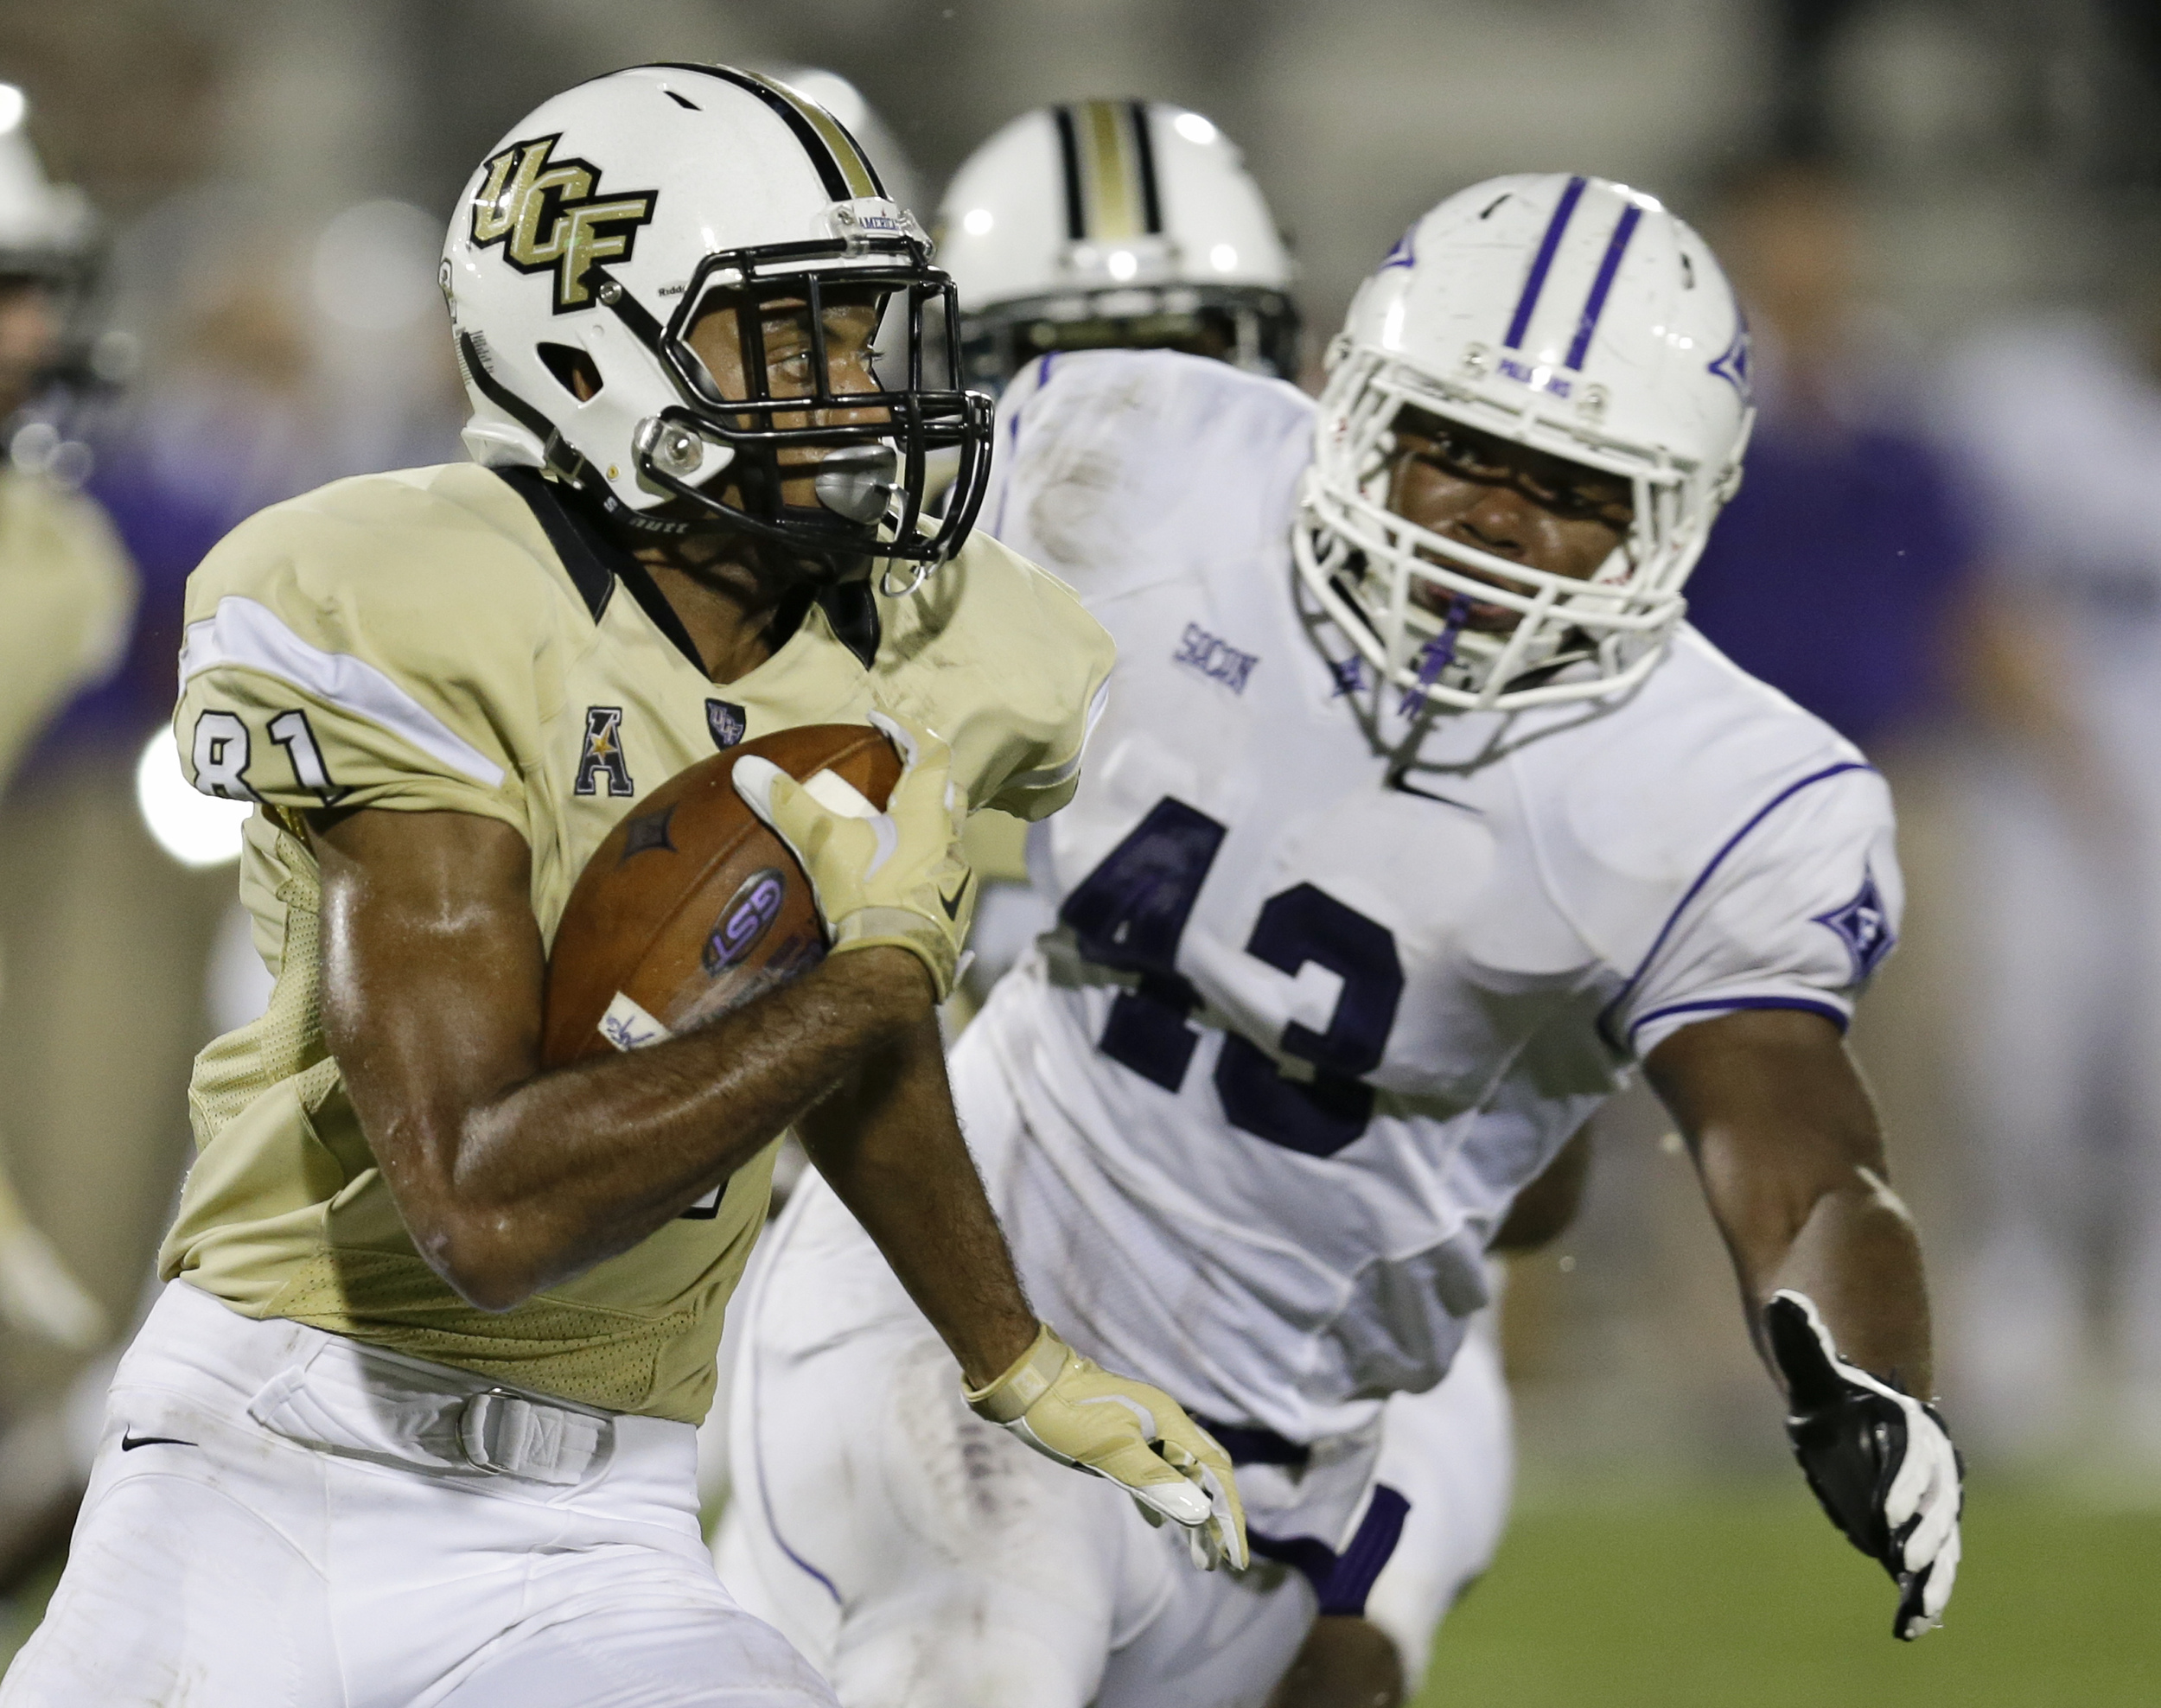 Central Florida wide receiver Chris Johnson (81) runs after a reception as Furman linebacker Brad Minter (43), tries to stop him during the second half an NCAA college football game, Saturday, Sept. 19, 2015, in Orlando, Fla. Furman won 16-15. (John Raoux/AP)